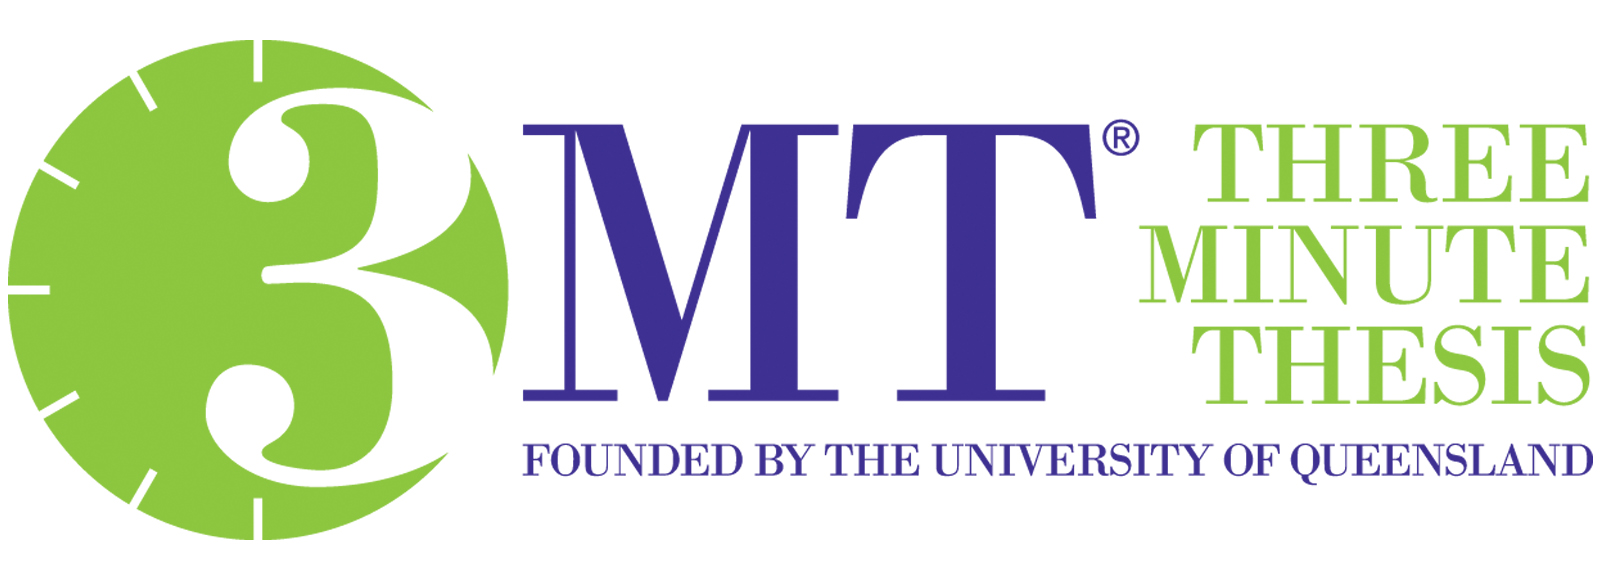 March 6: Graduate School 3MT Competition